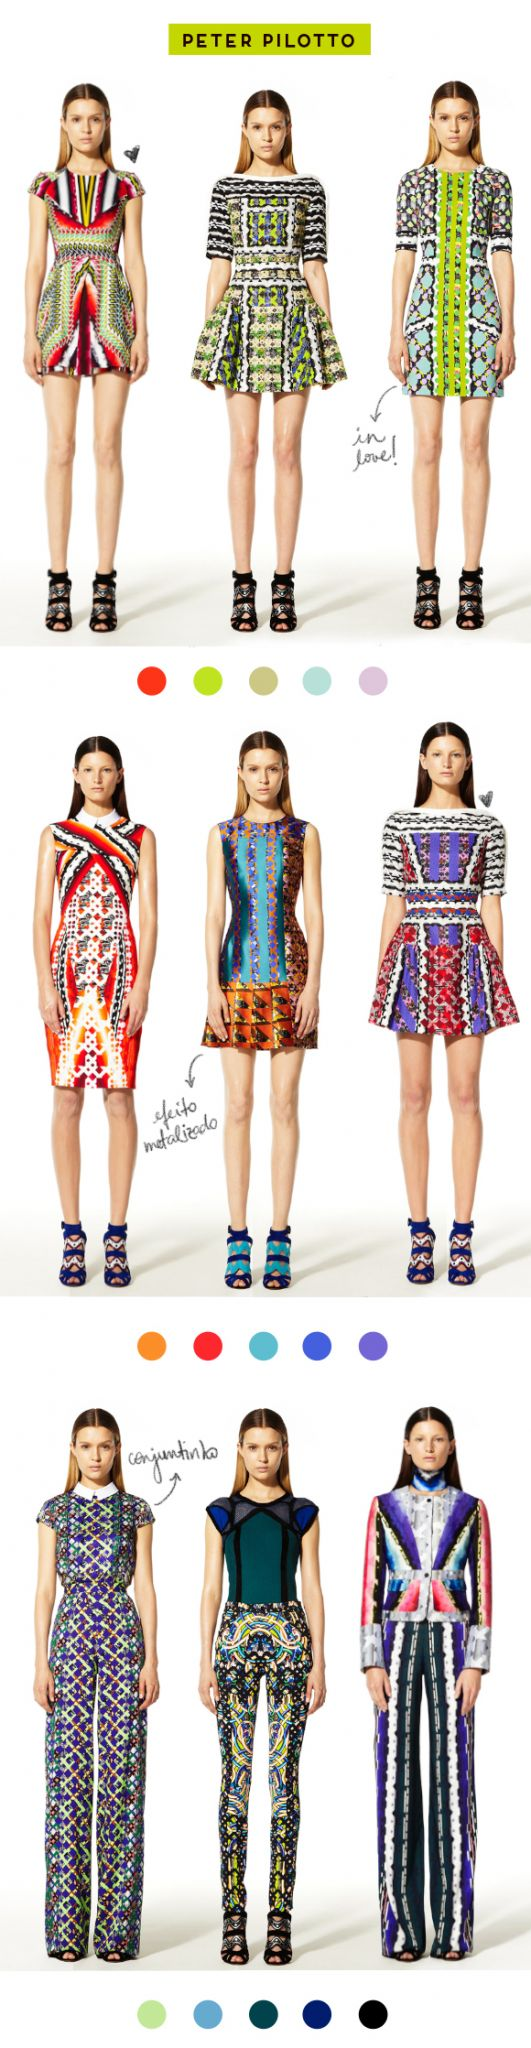 Peter Pilotto | Resort 2013